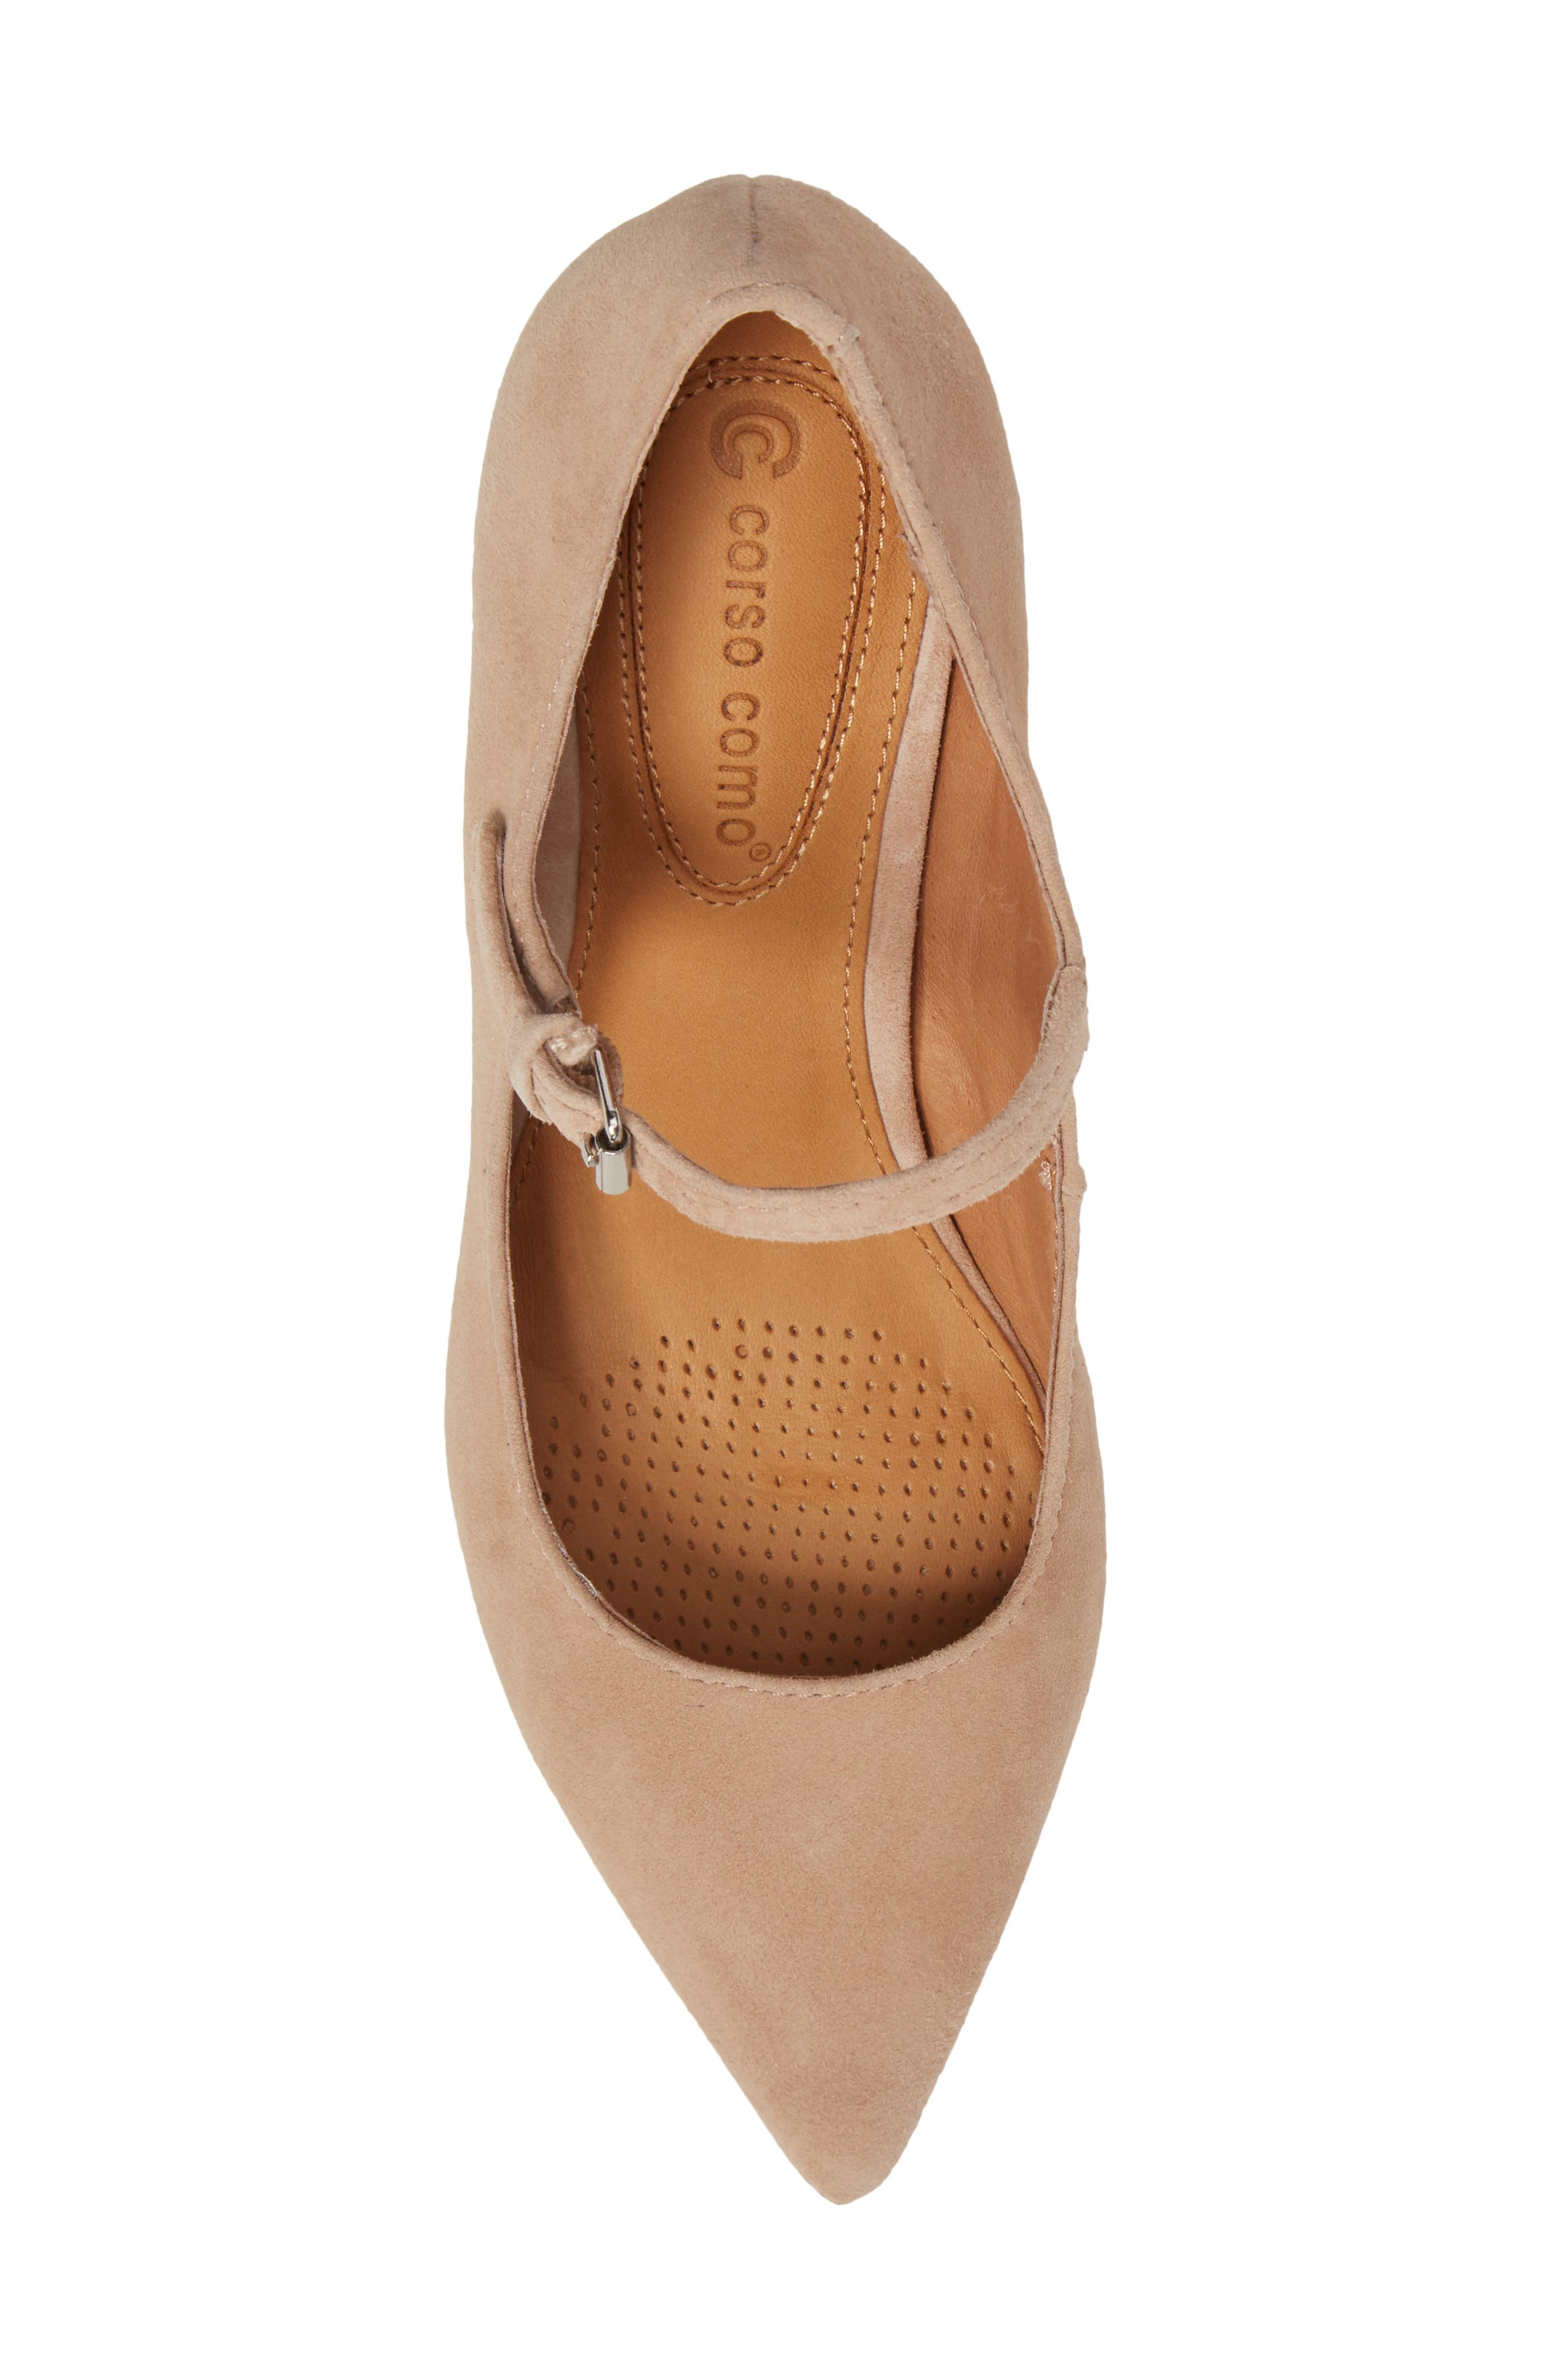 Coy Pointy Toe Pump,                             Alternate thumbnail 5, color,                             Dark Nude Suede